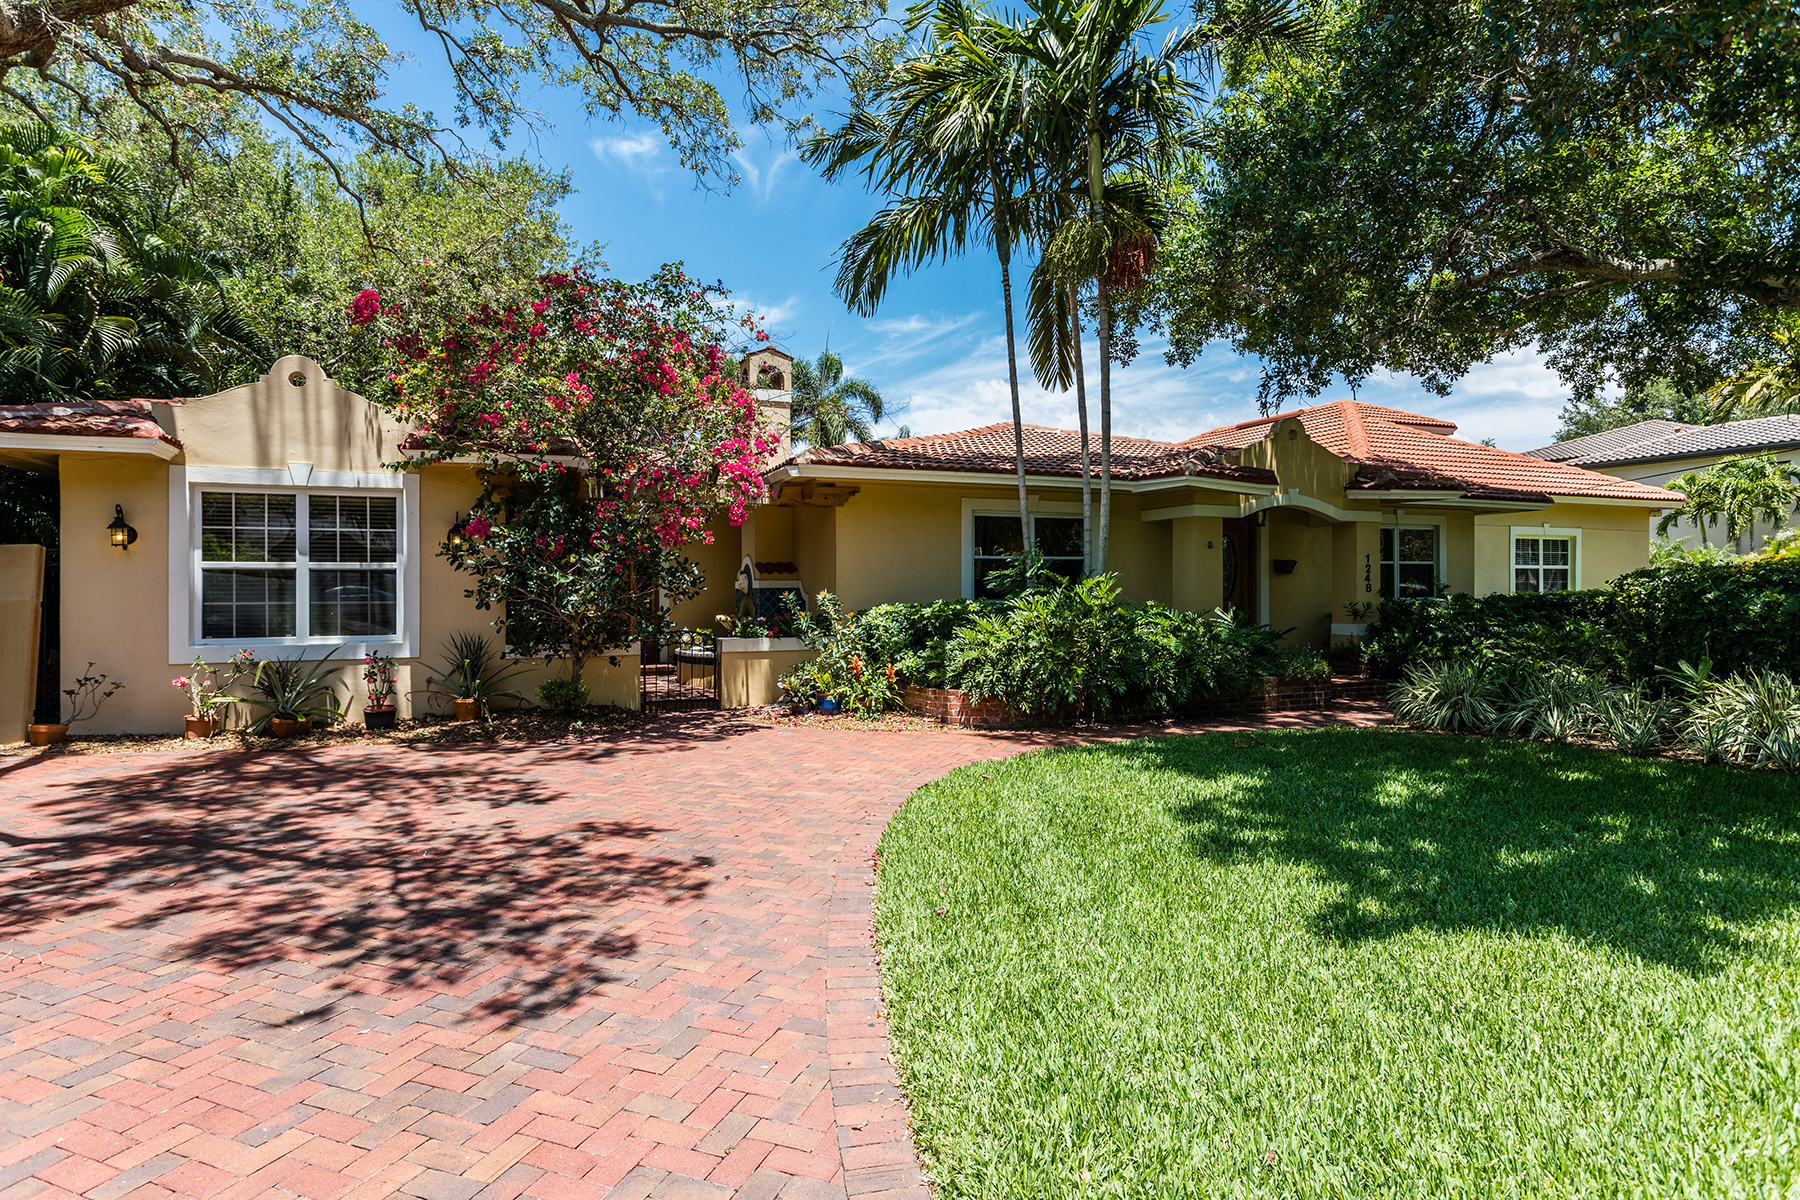 Single Family Home for Sale at SNELL ISLE 1248 Monterey Blvd NE St. Petersburg, Florida 33704 United States